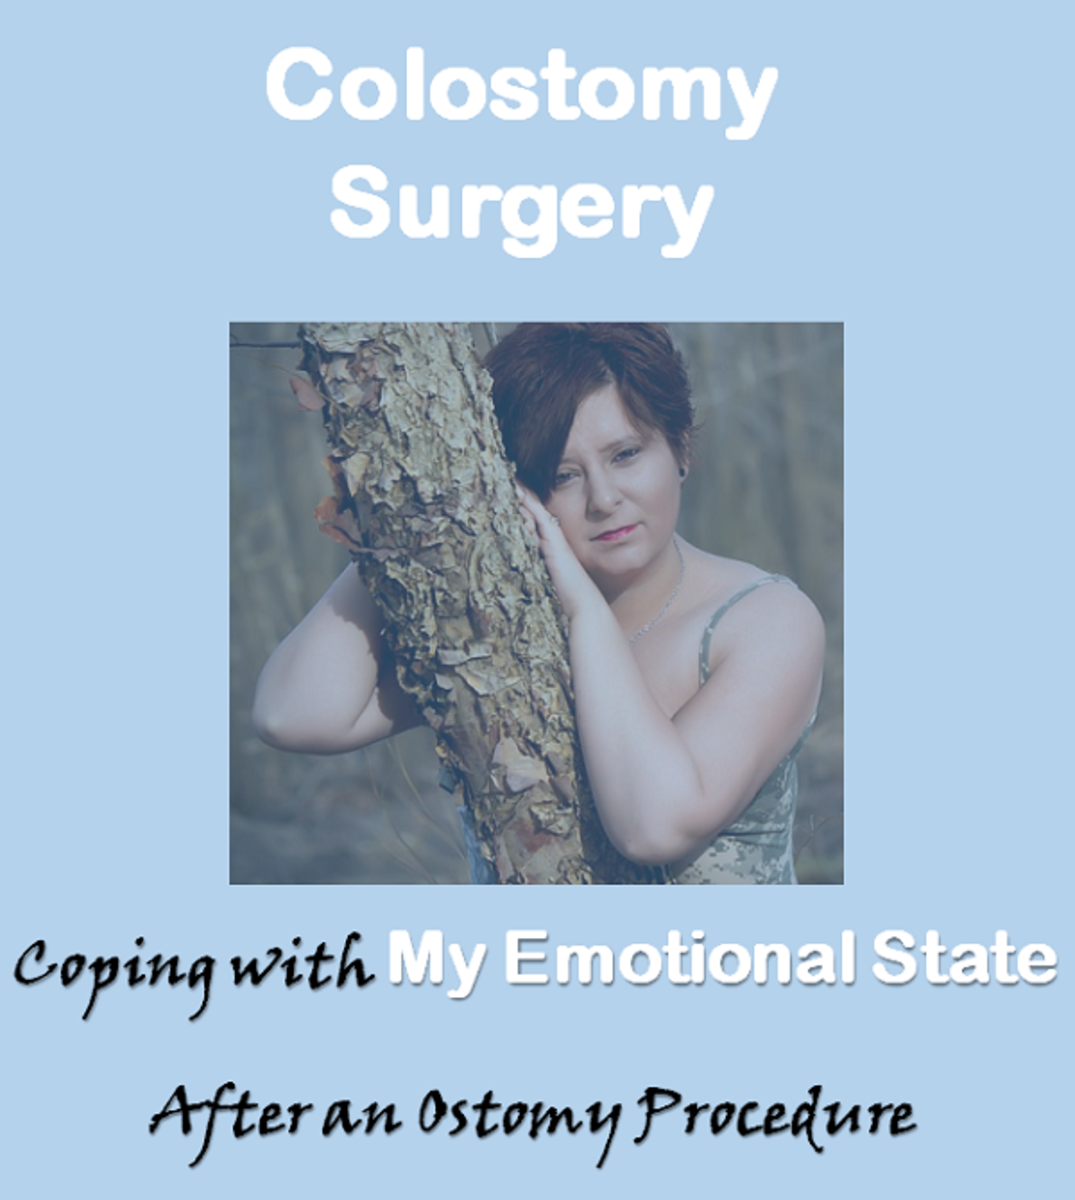 Colostomy Surgery: Coping with My Emotional State After an Ostomy Procedure